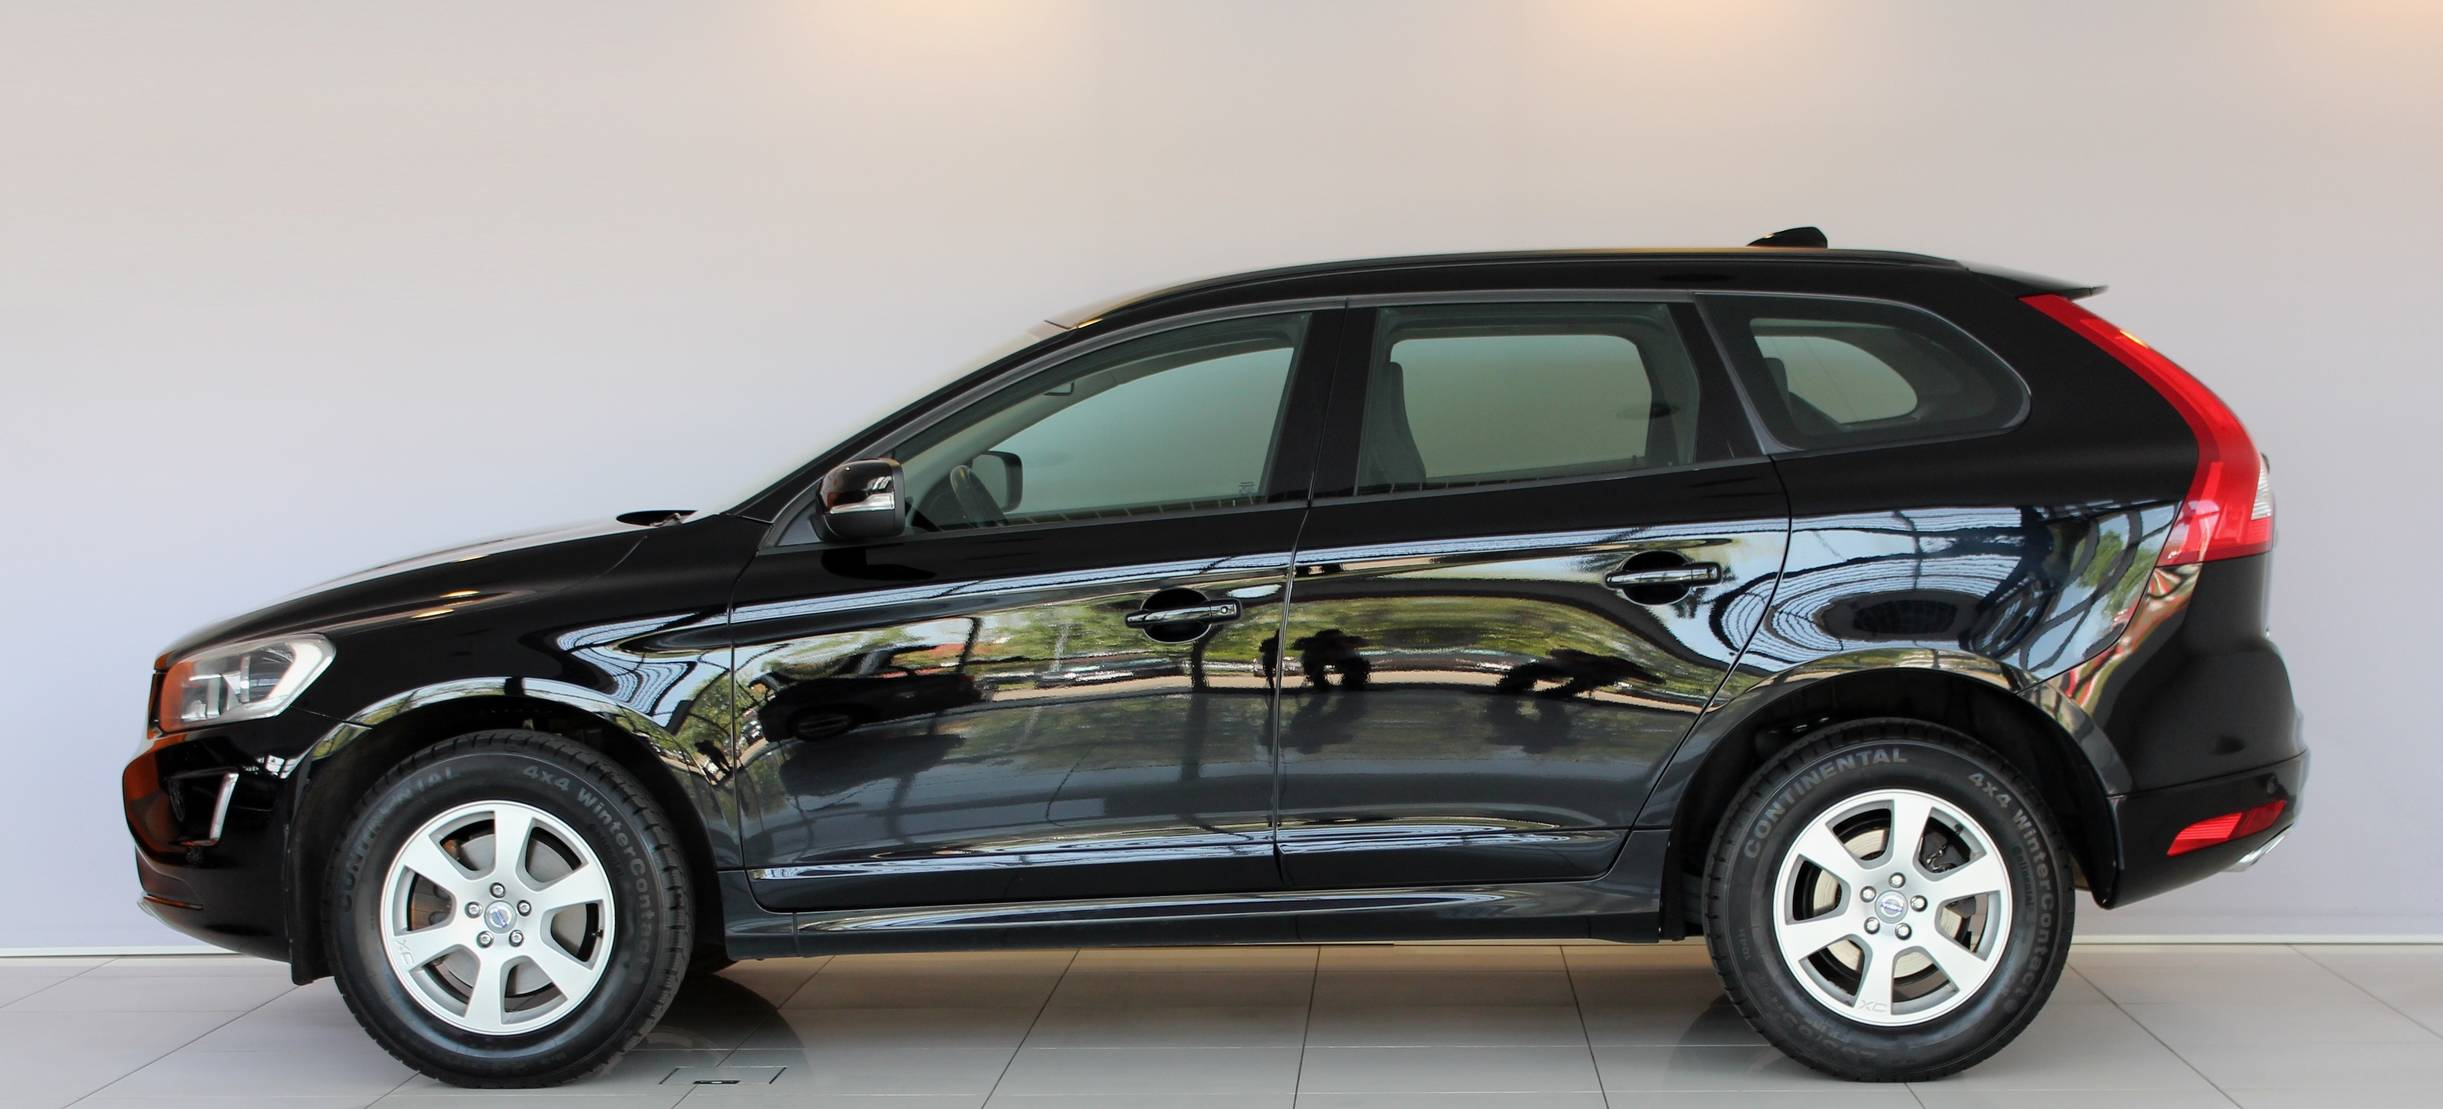 Volvo XC60 D4 AWD Geartronic, Kinetic detail2